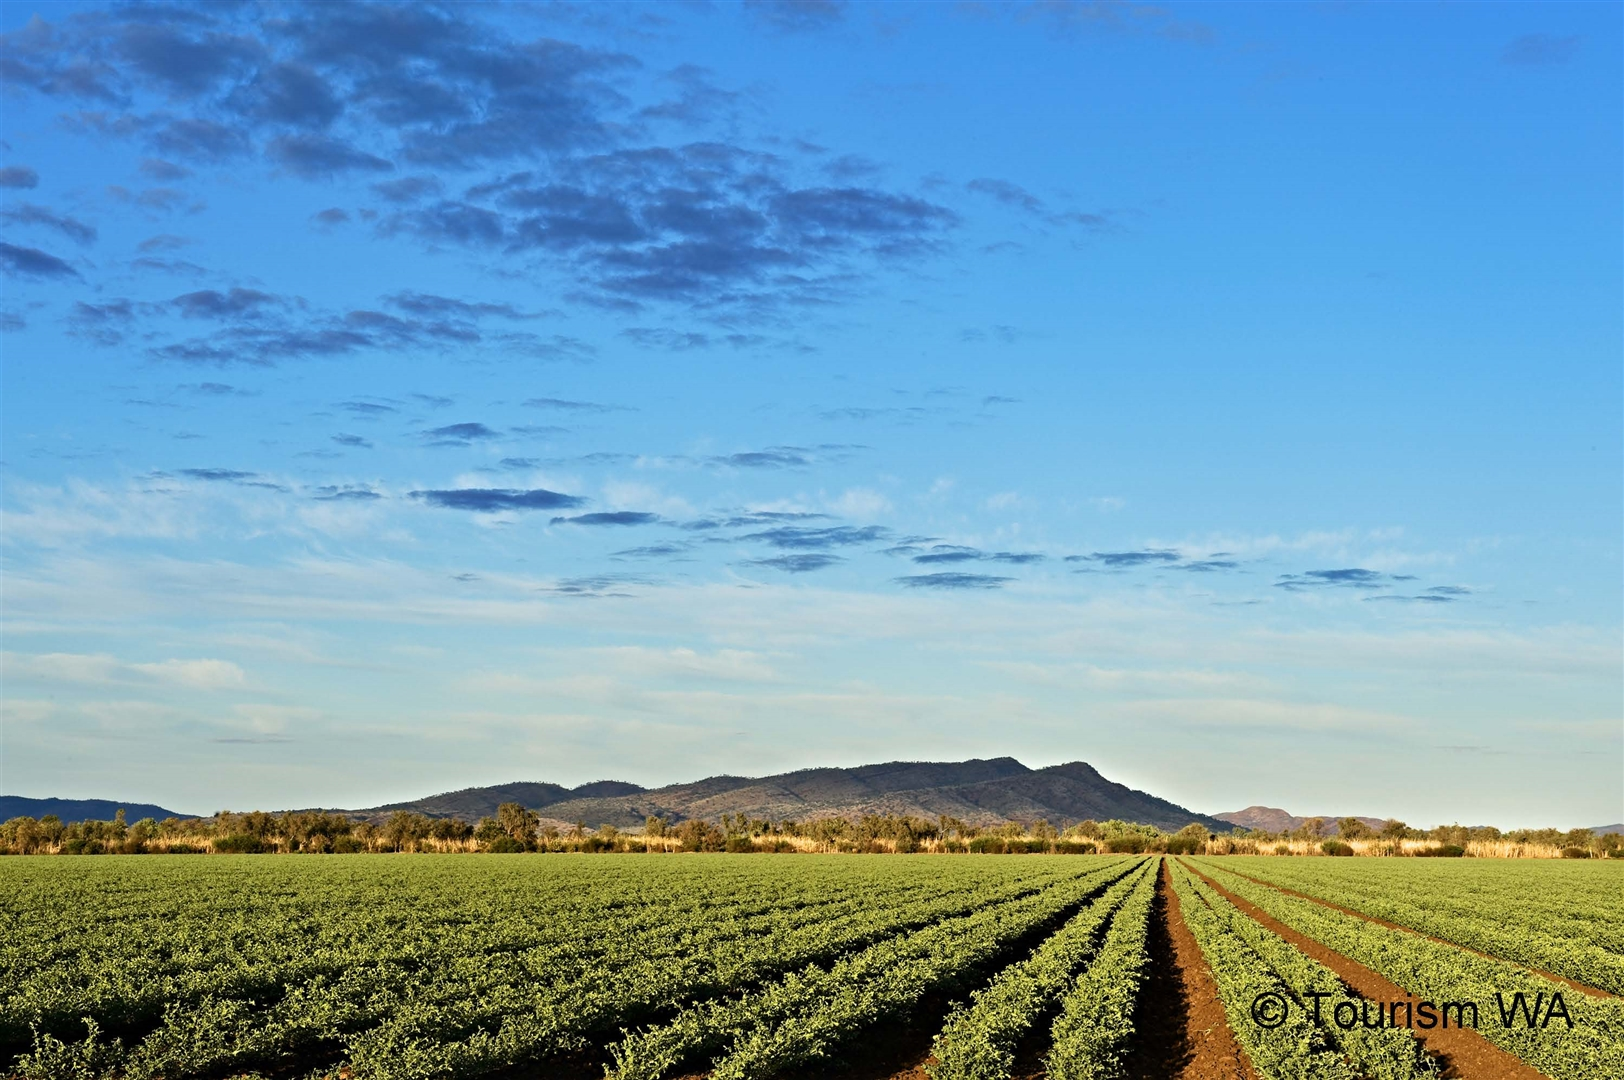 Tourism Western Australia Crop located in the Ord Irrigation Project near Kununurra